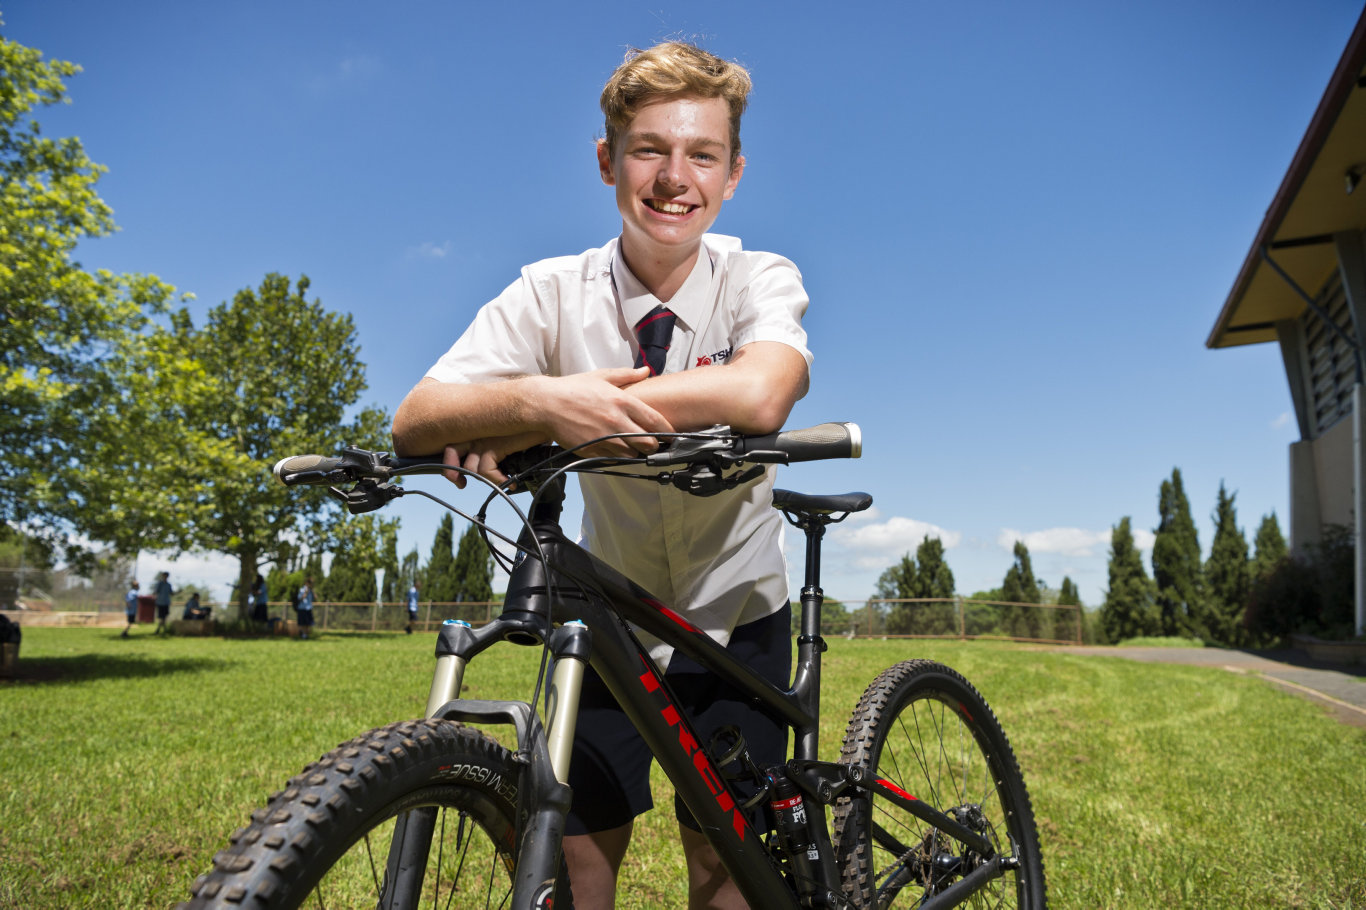 Toowoomba State High School student and champion mountain bike racer George Kirwan is excited that federal funding from the Local Schools Community Fund will be used for a mountain bike program at the school, Monday, February 17, 2020. Picture: Kevin Farmer